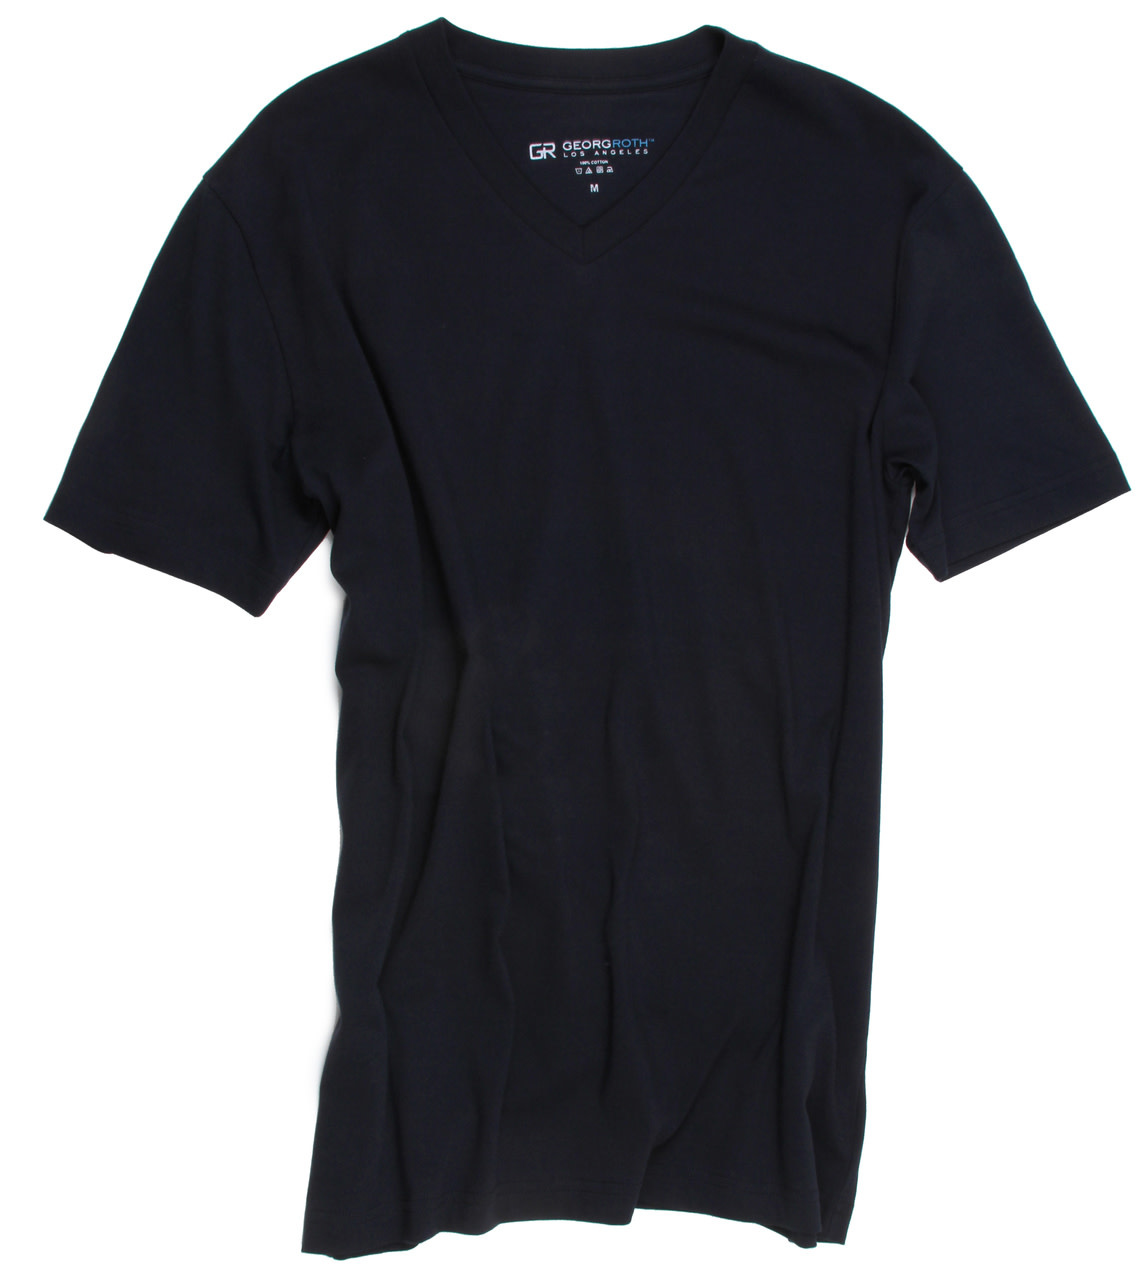 Georg Roth Pima V-Neck T-Shirt